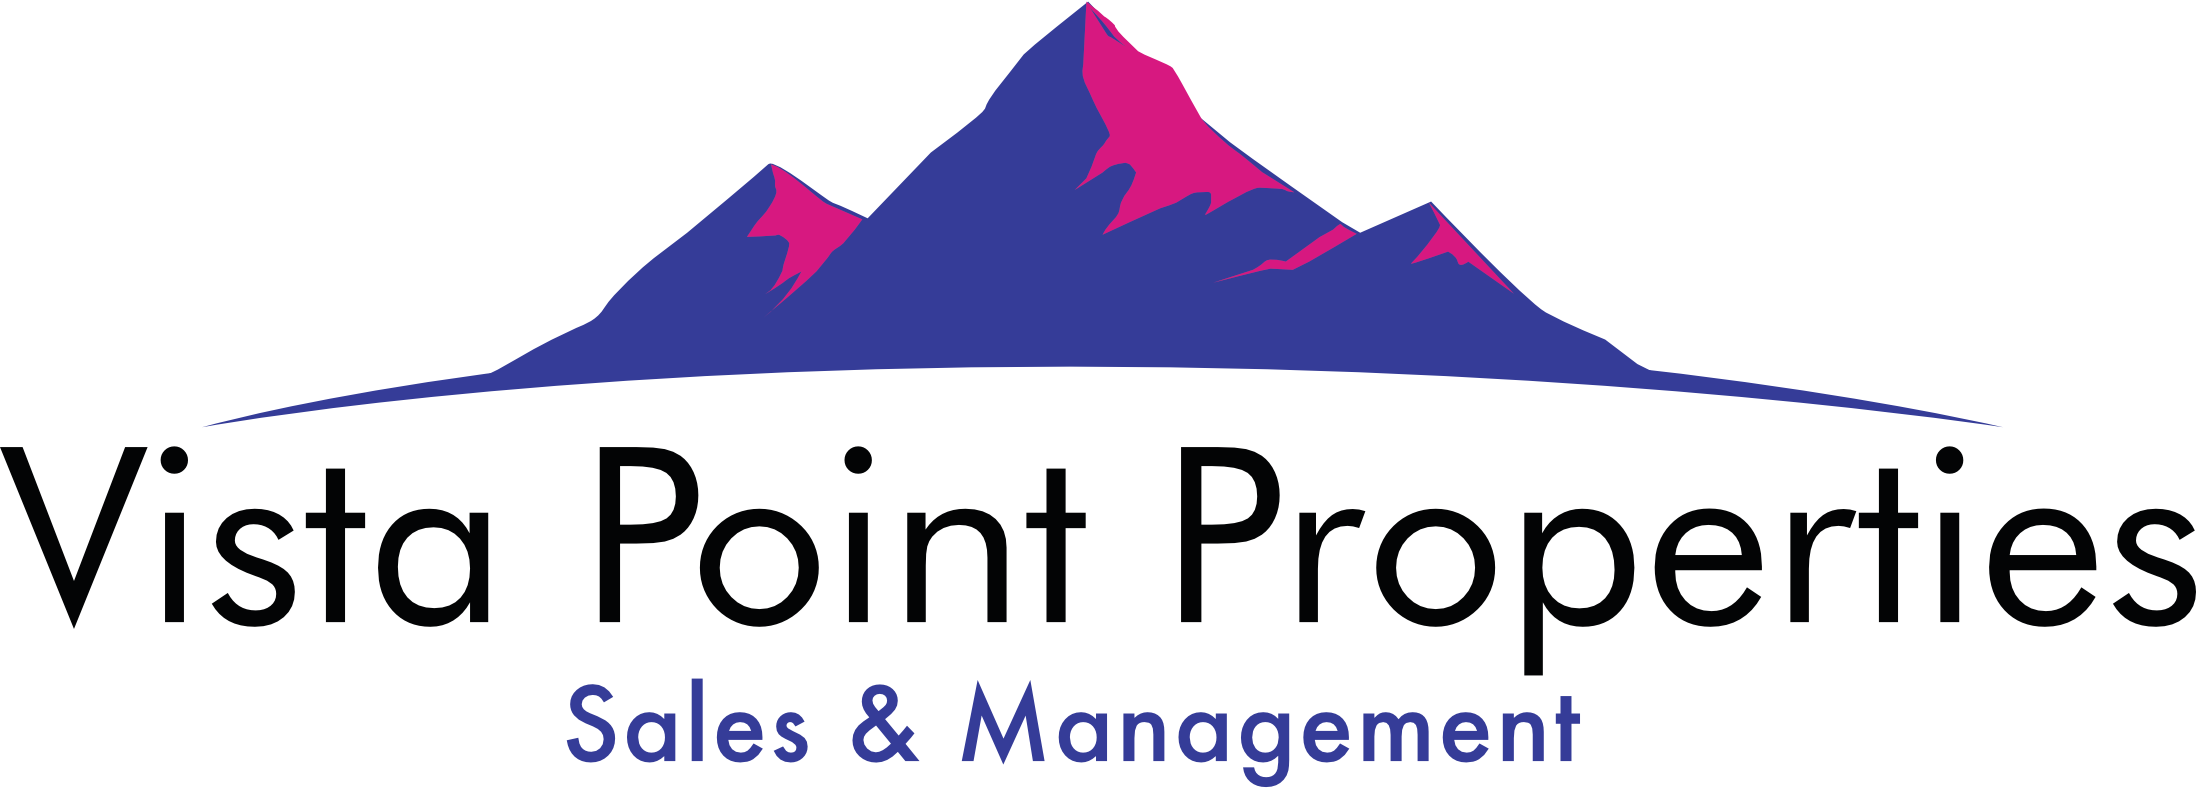 Vista Point Properties |   Listings